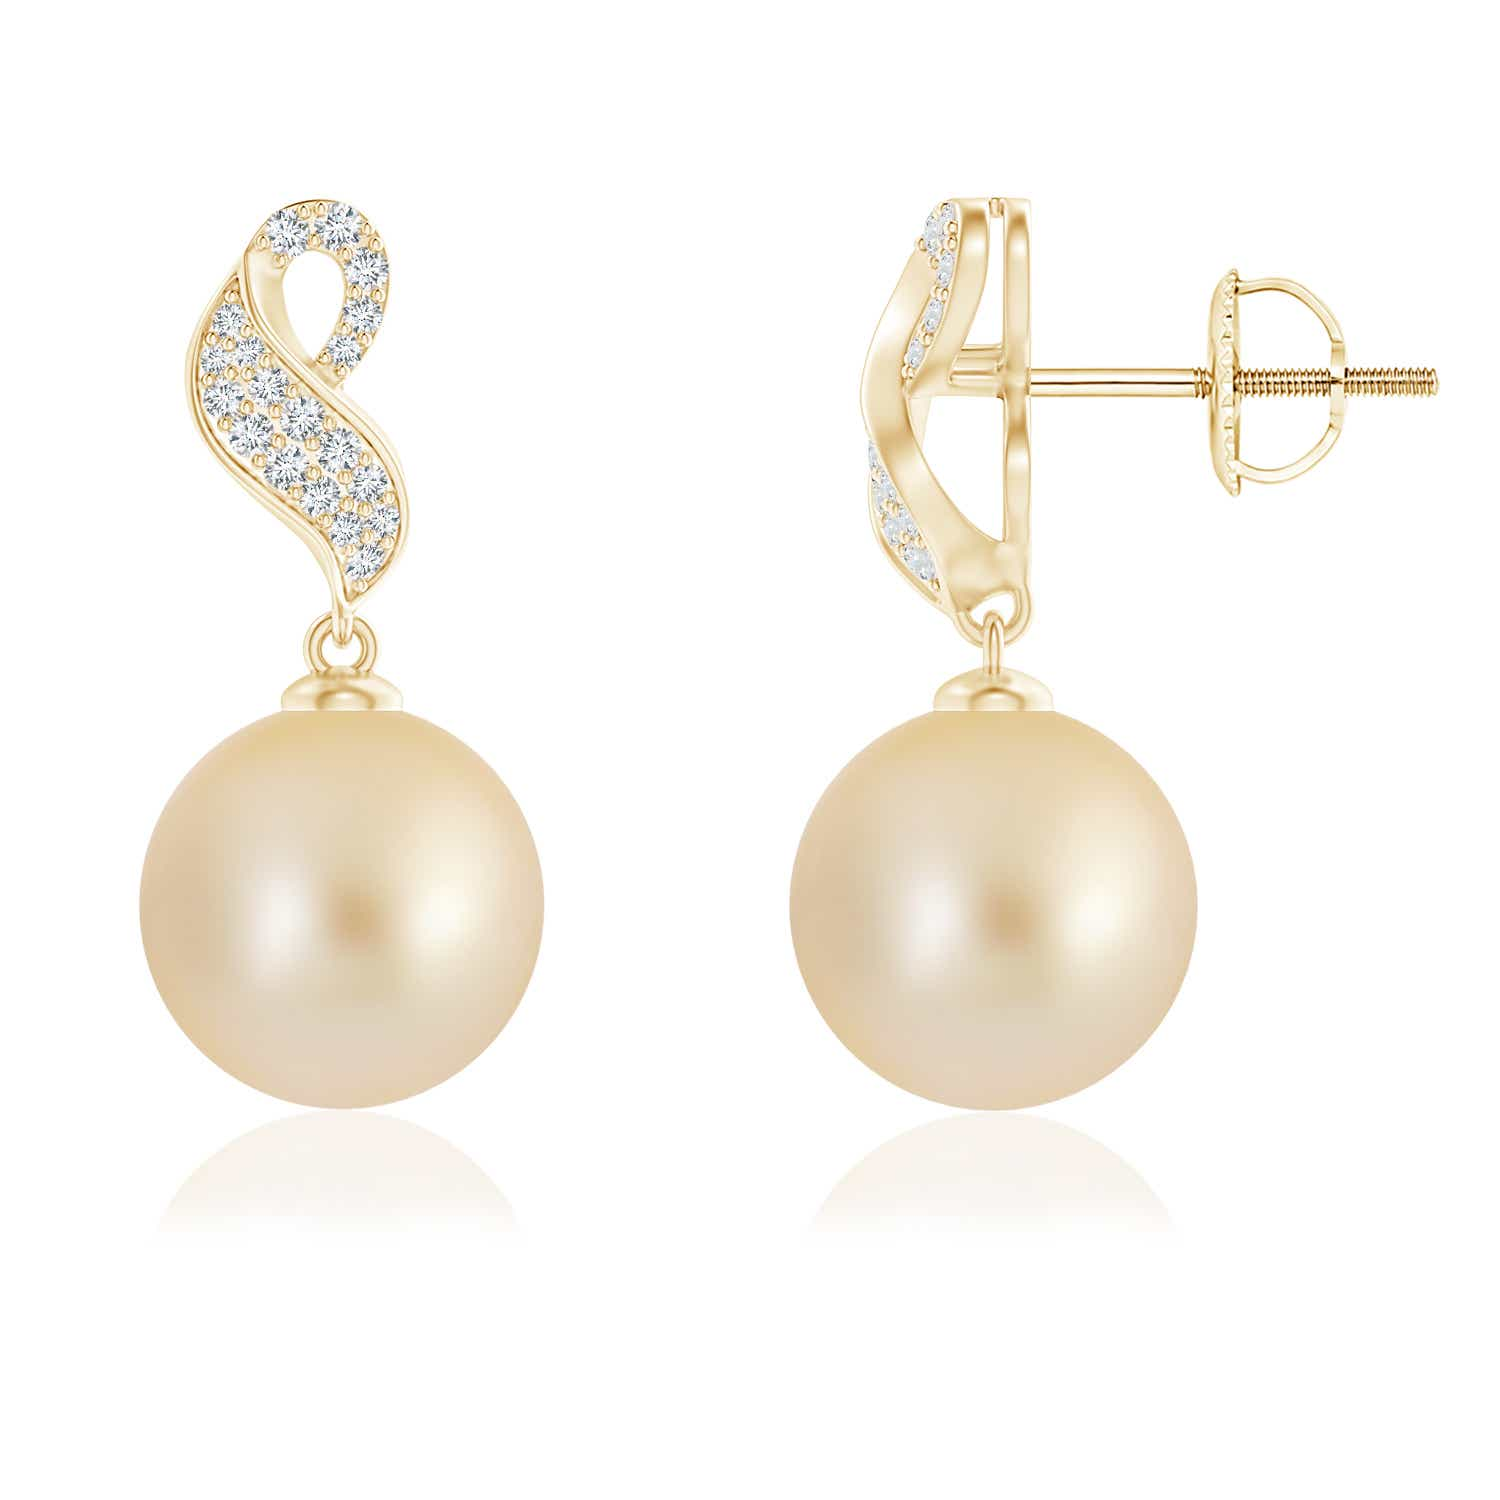 Angara South Sea Cultured Pearl and Diamond Bow Earrings eTExoOig